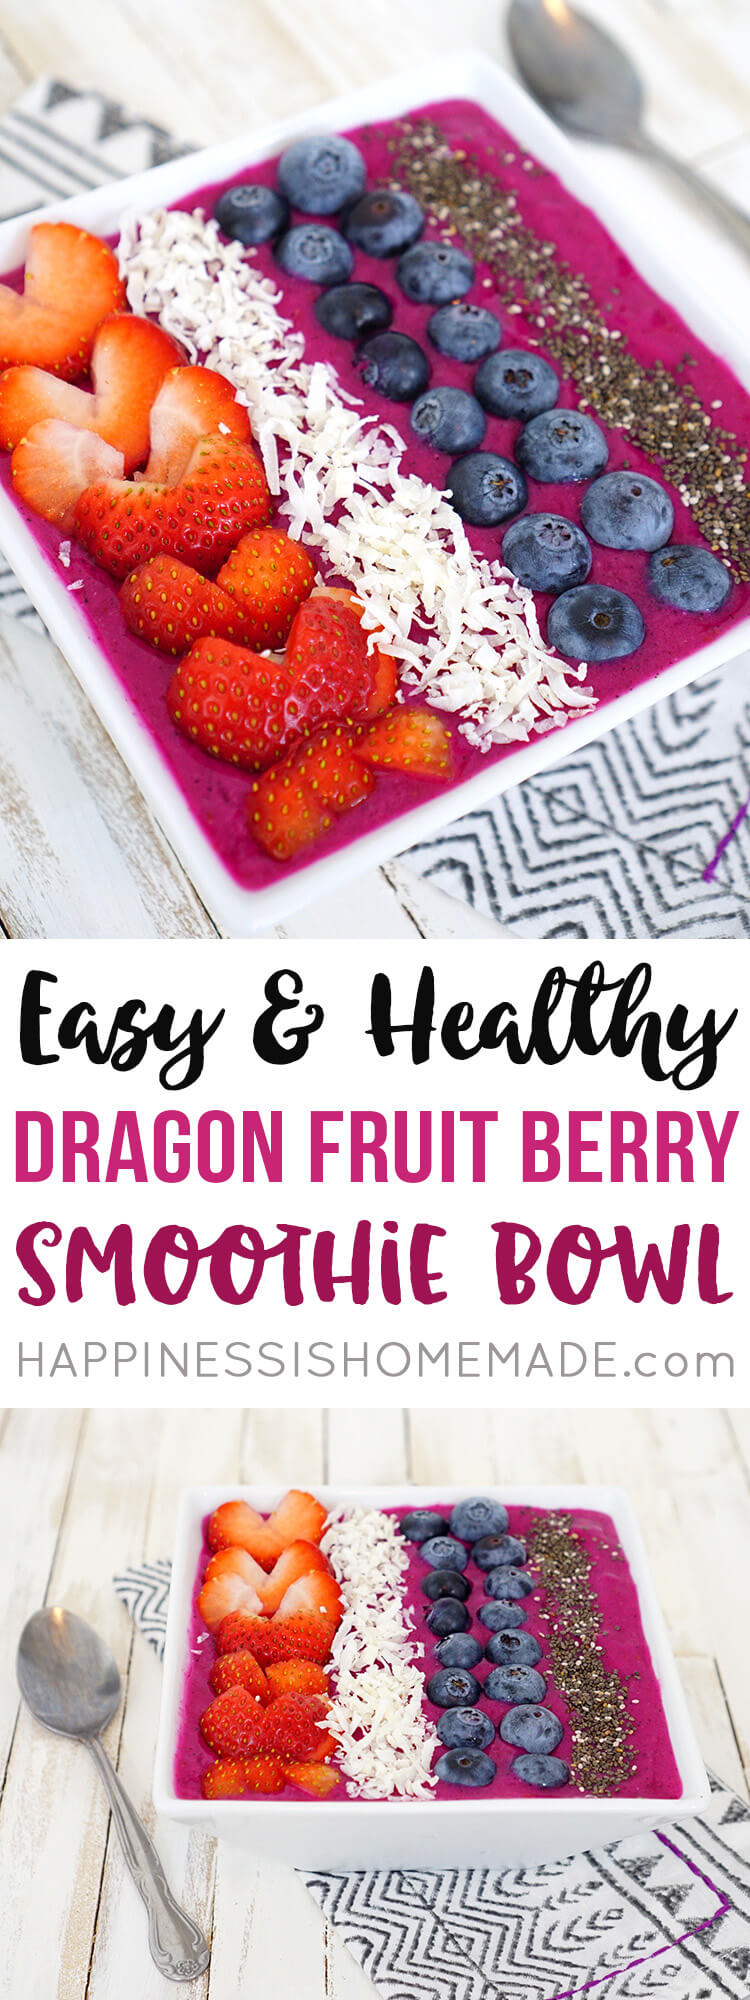 easy-and-healthy-dragon-fruit-berry-smoothie-bowl